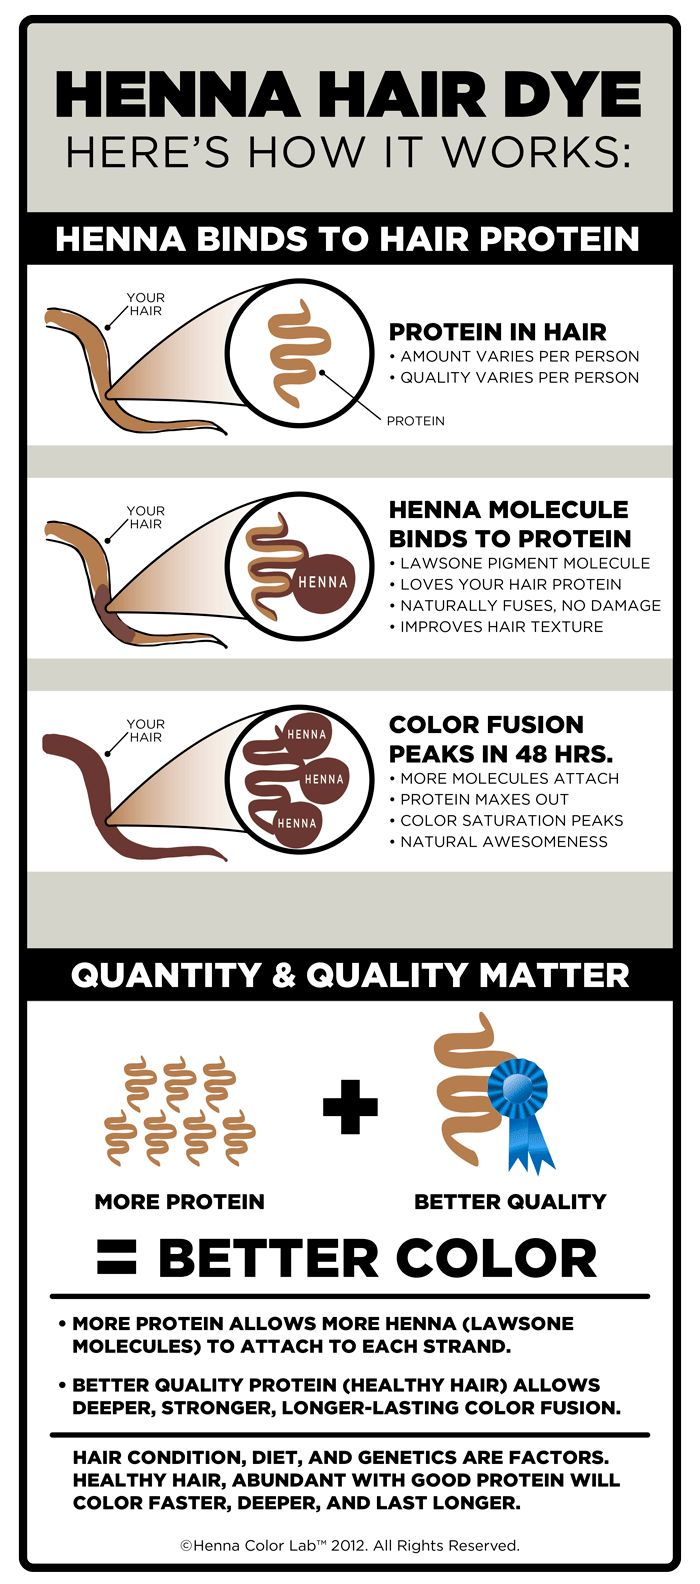 HCL™ HOW HENNA HAIR DYE WORKS...the natural way to color hair.